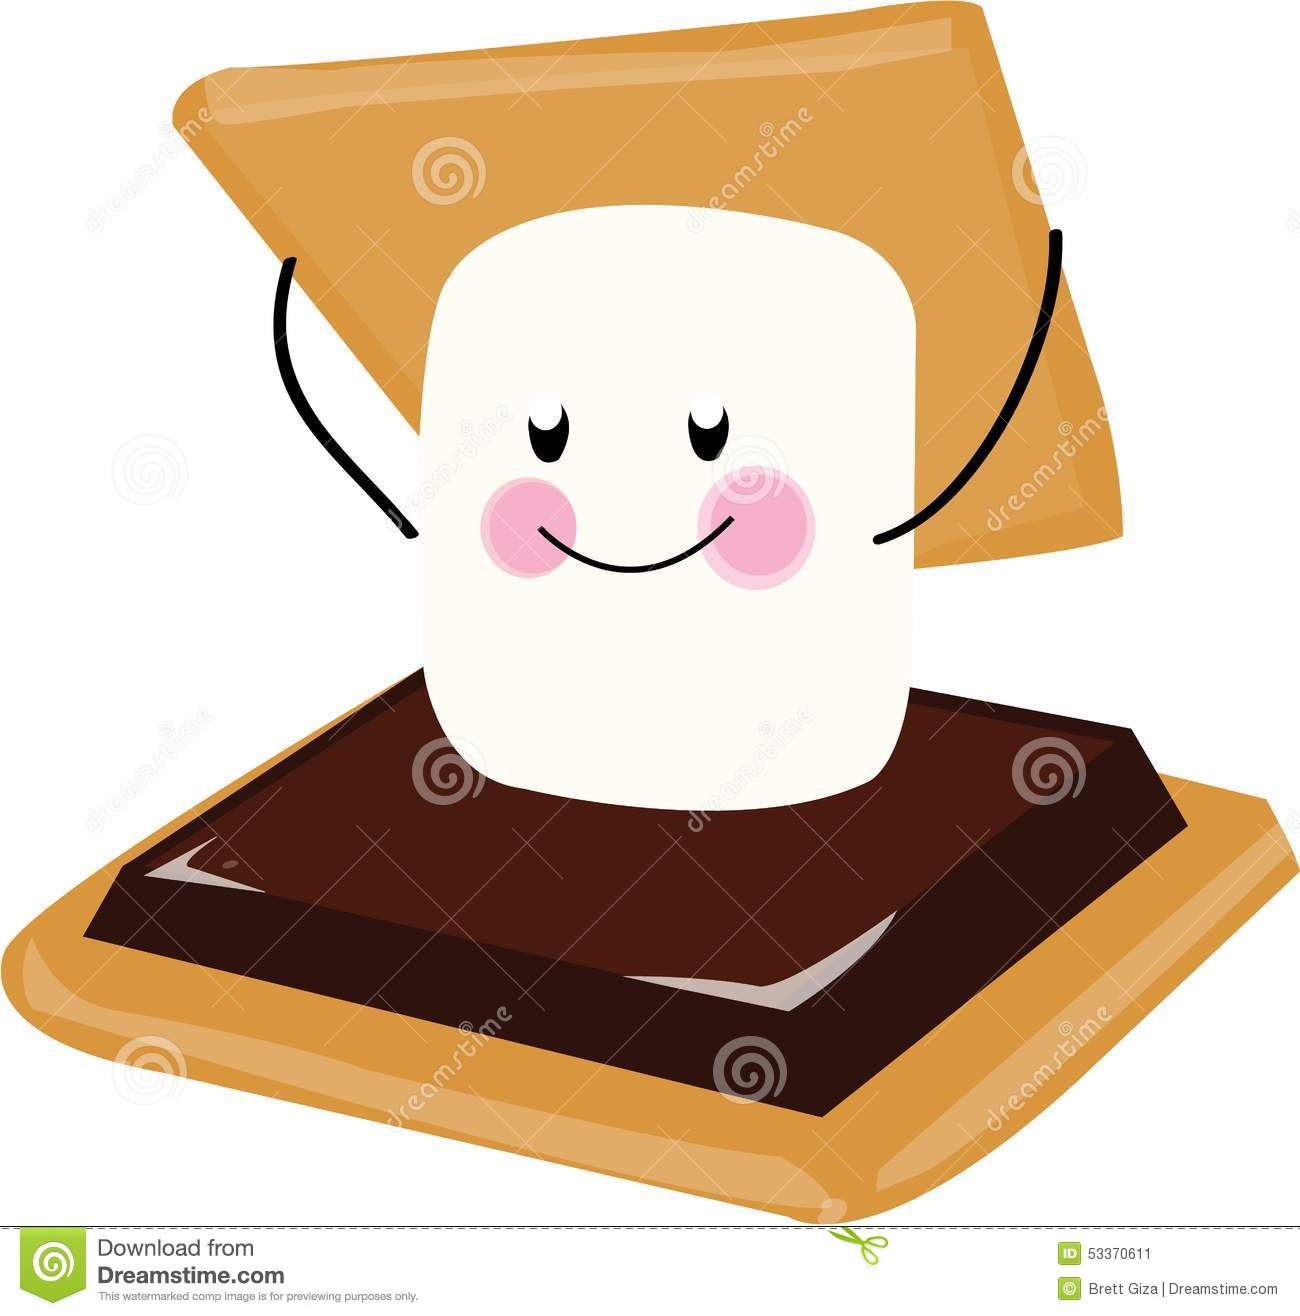 smore clipart free download best smore clipart on clipartmag com rh clipartmag com funny s'more clipart smore clipart 48082